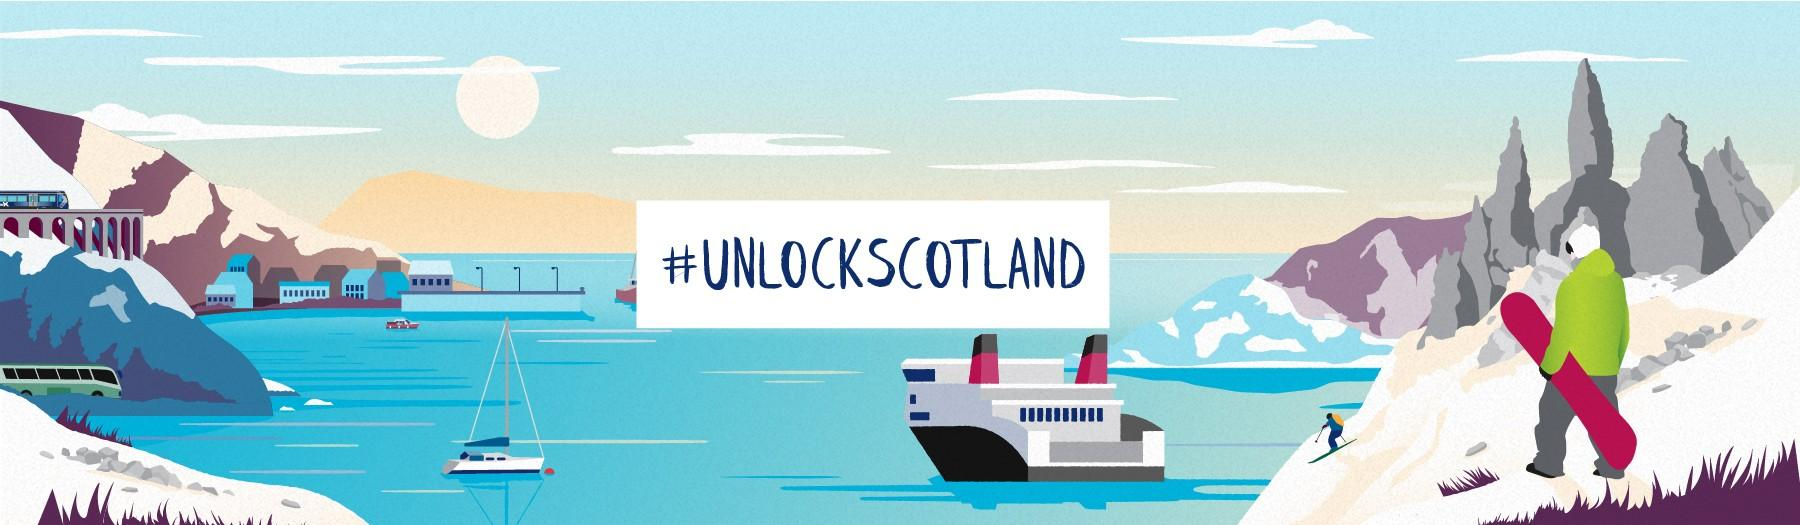 Spirit of Scotland winter illustration #unlockscotland